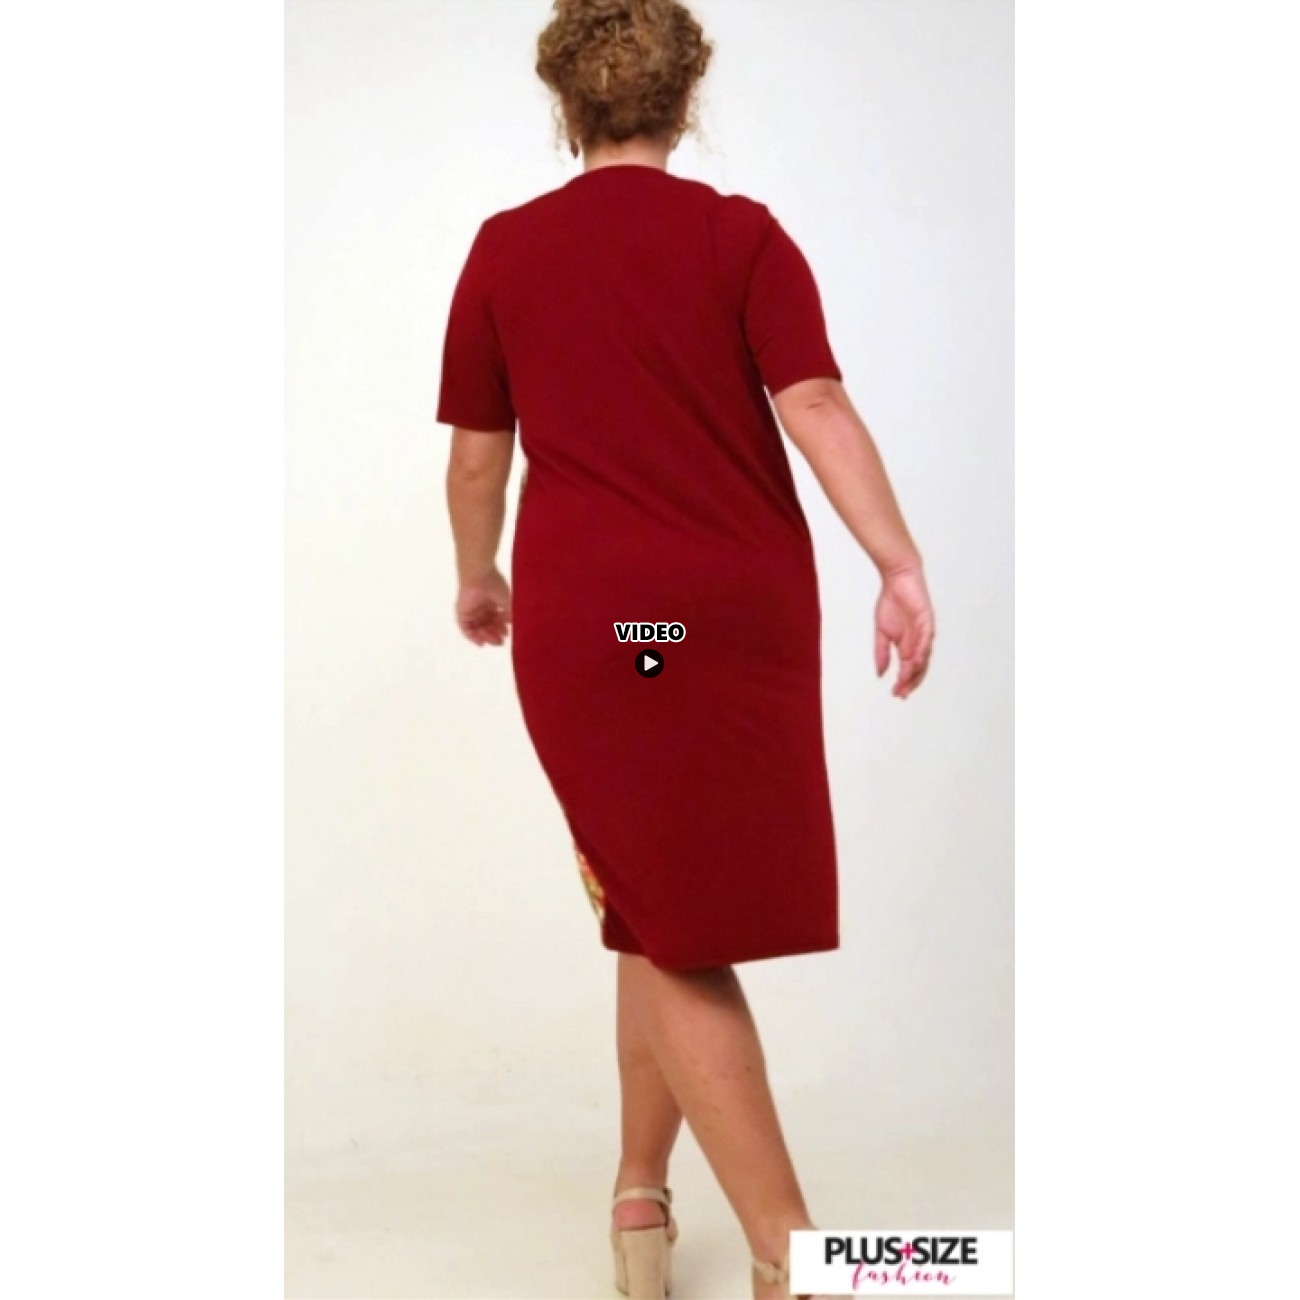 A21-7600V Jersey Dress in classic line